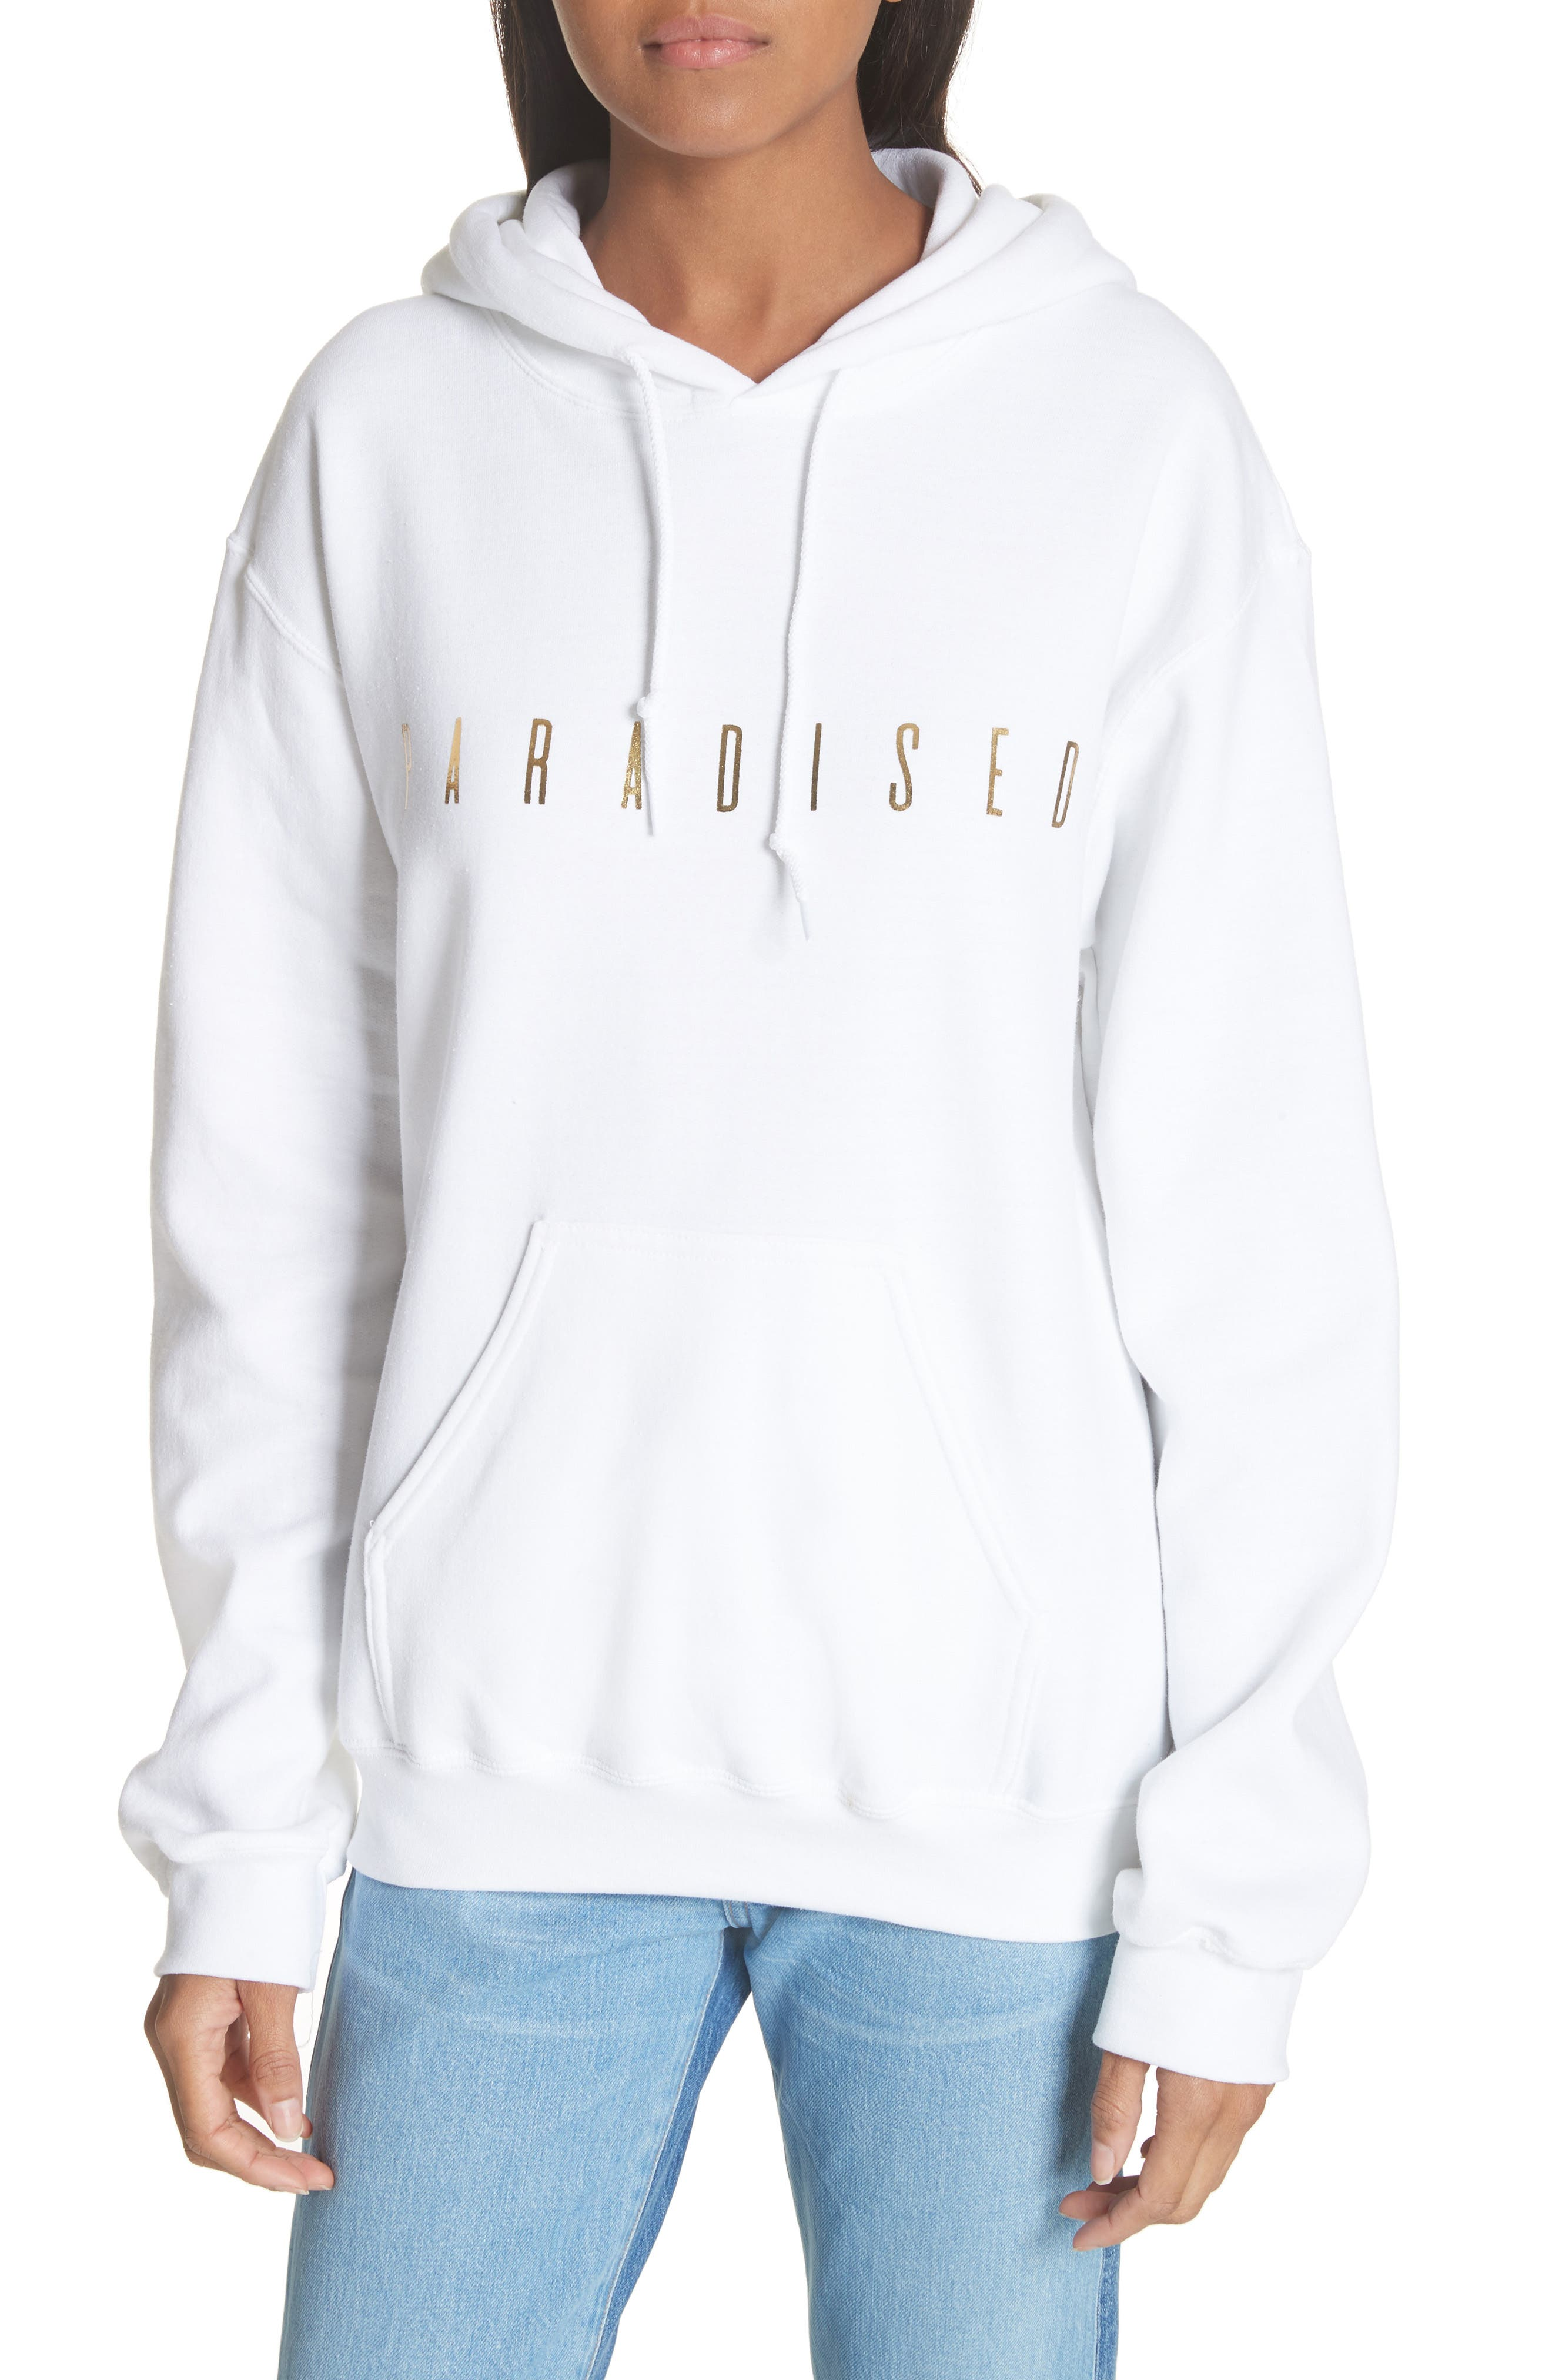 Paradised Sun Sees Everything Hoodie